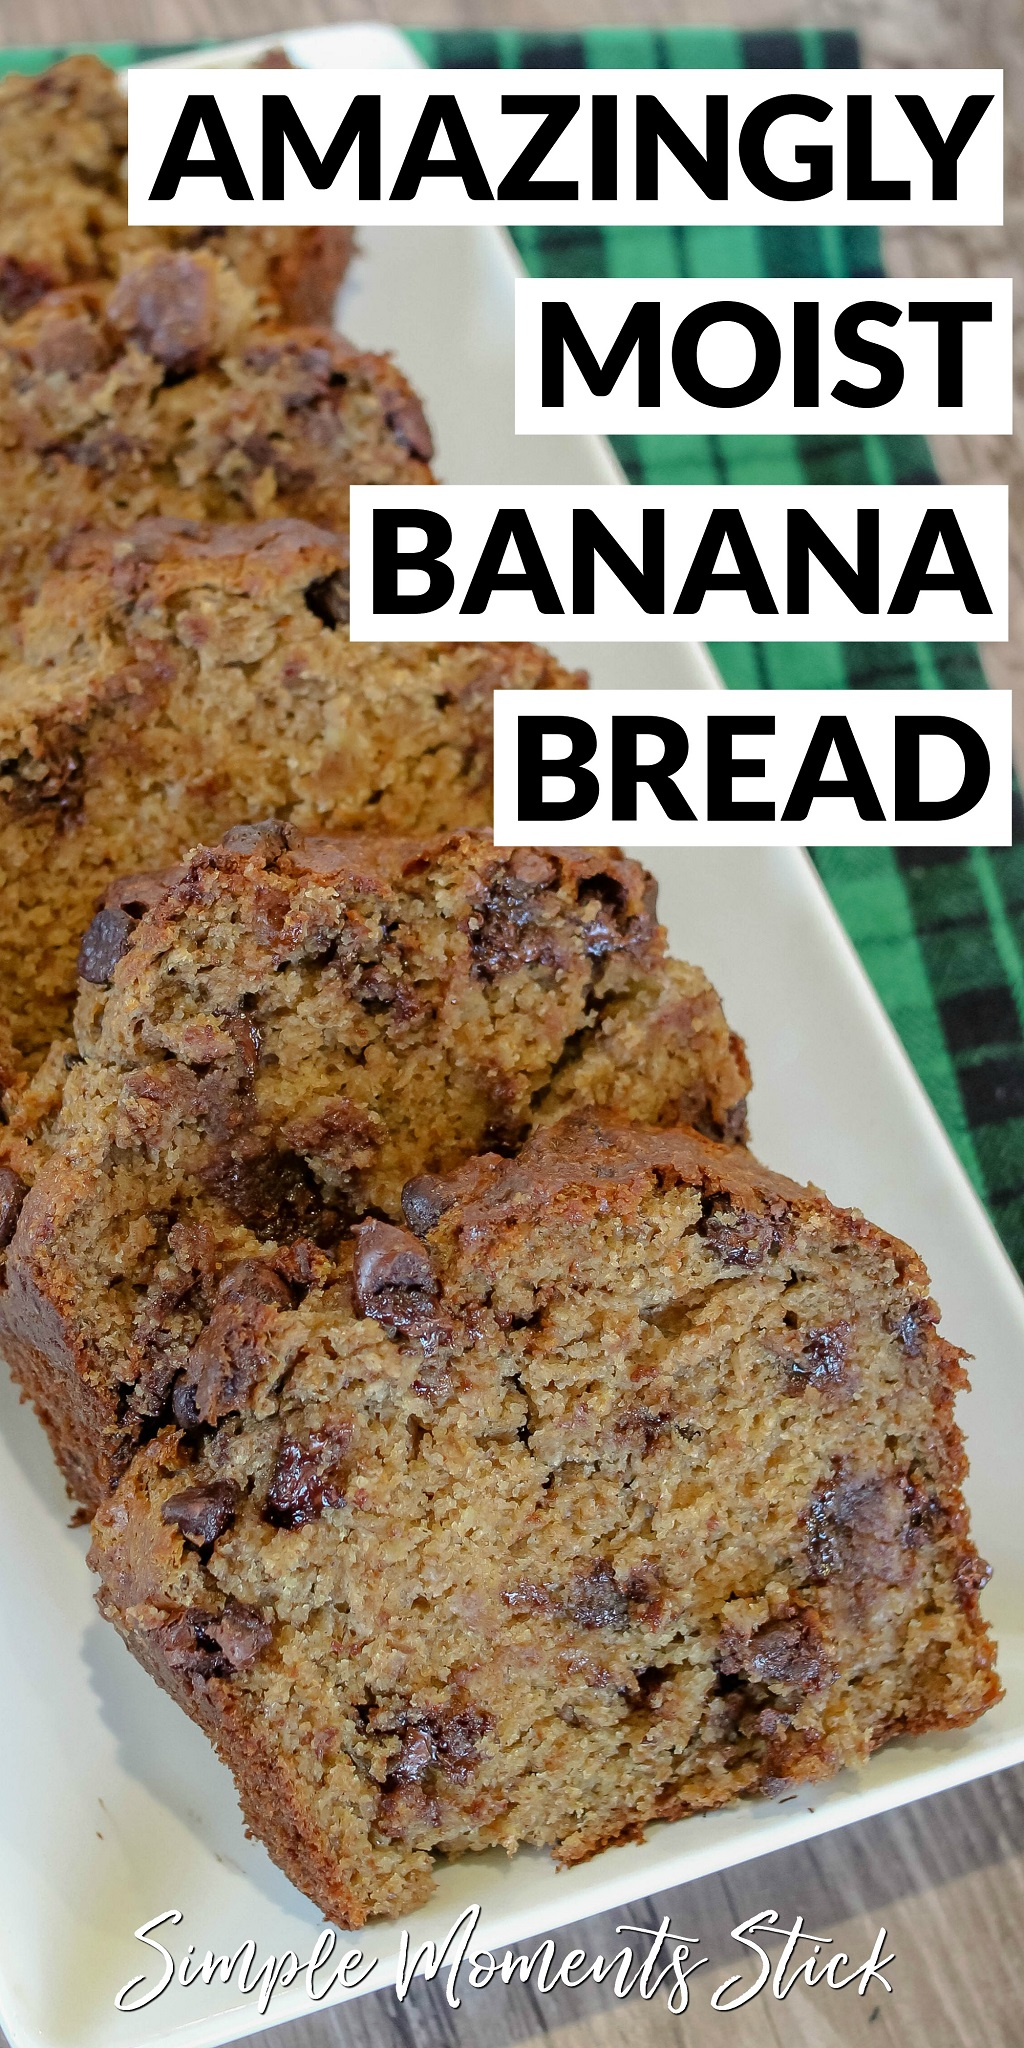 The ultimate moist banana bread recipe